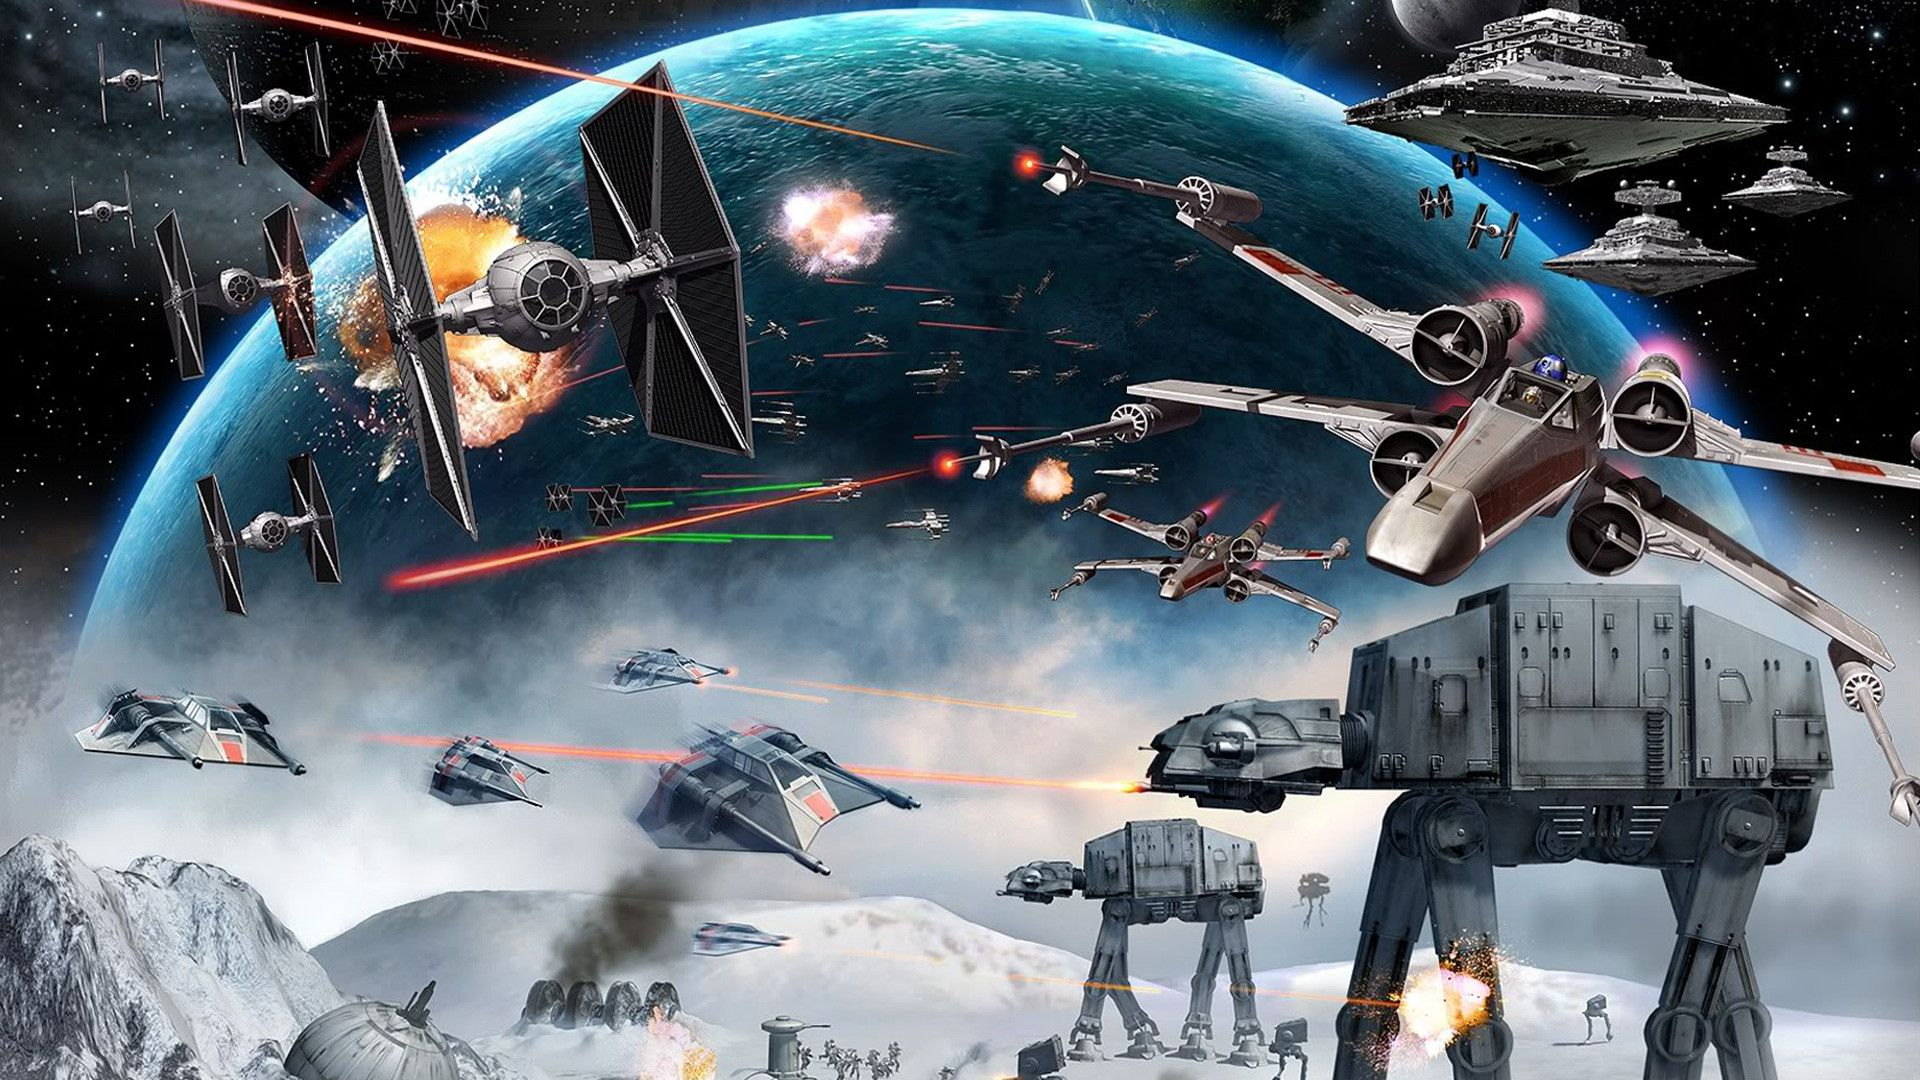 Star Wars Wallpapers 1080p 1920x1080